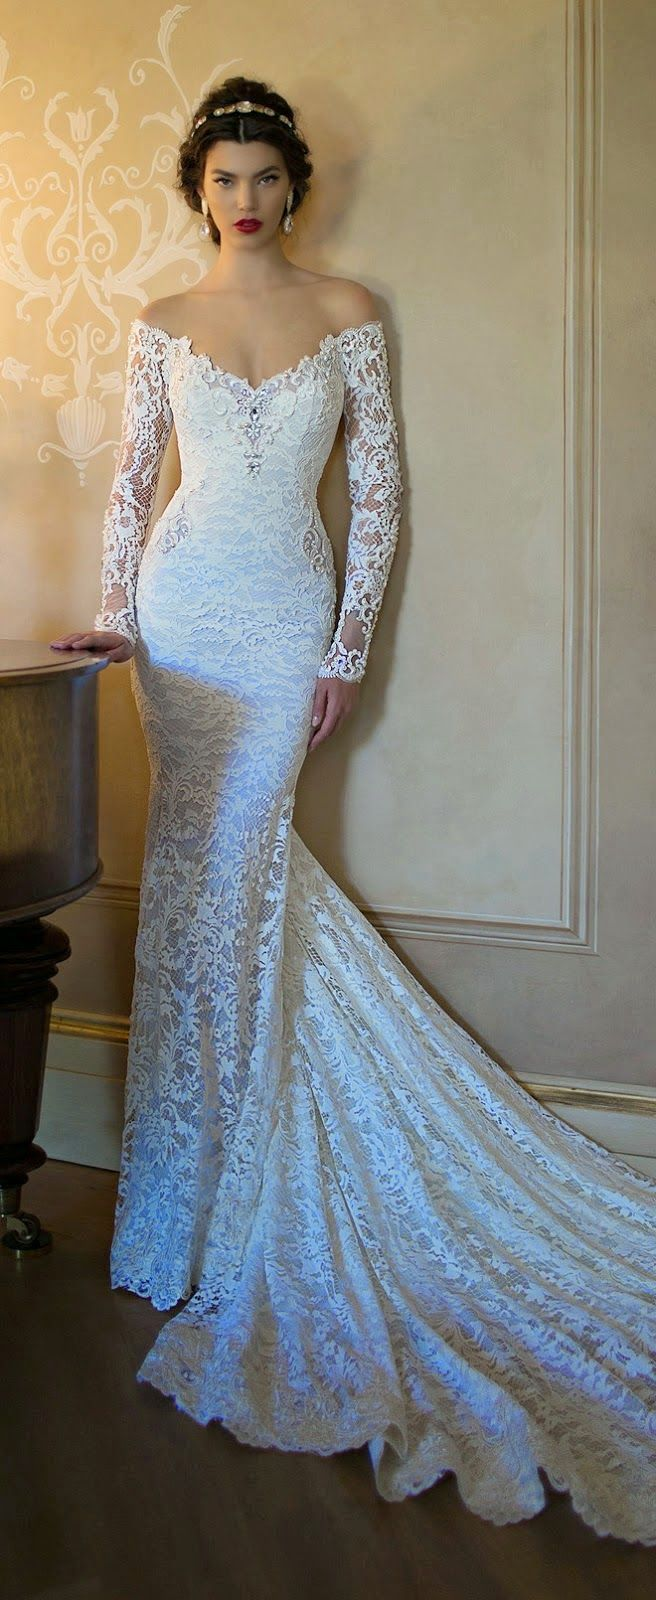 Best Wedding Dresses of 2014 | Novia sofisticada, Lindo y Novios